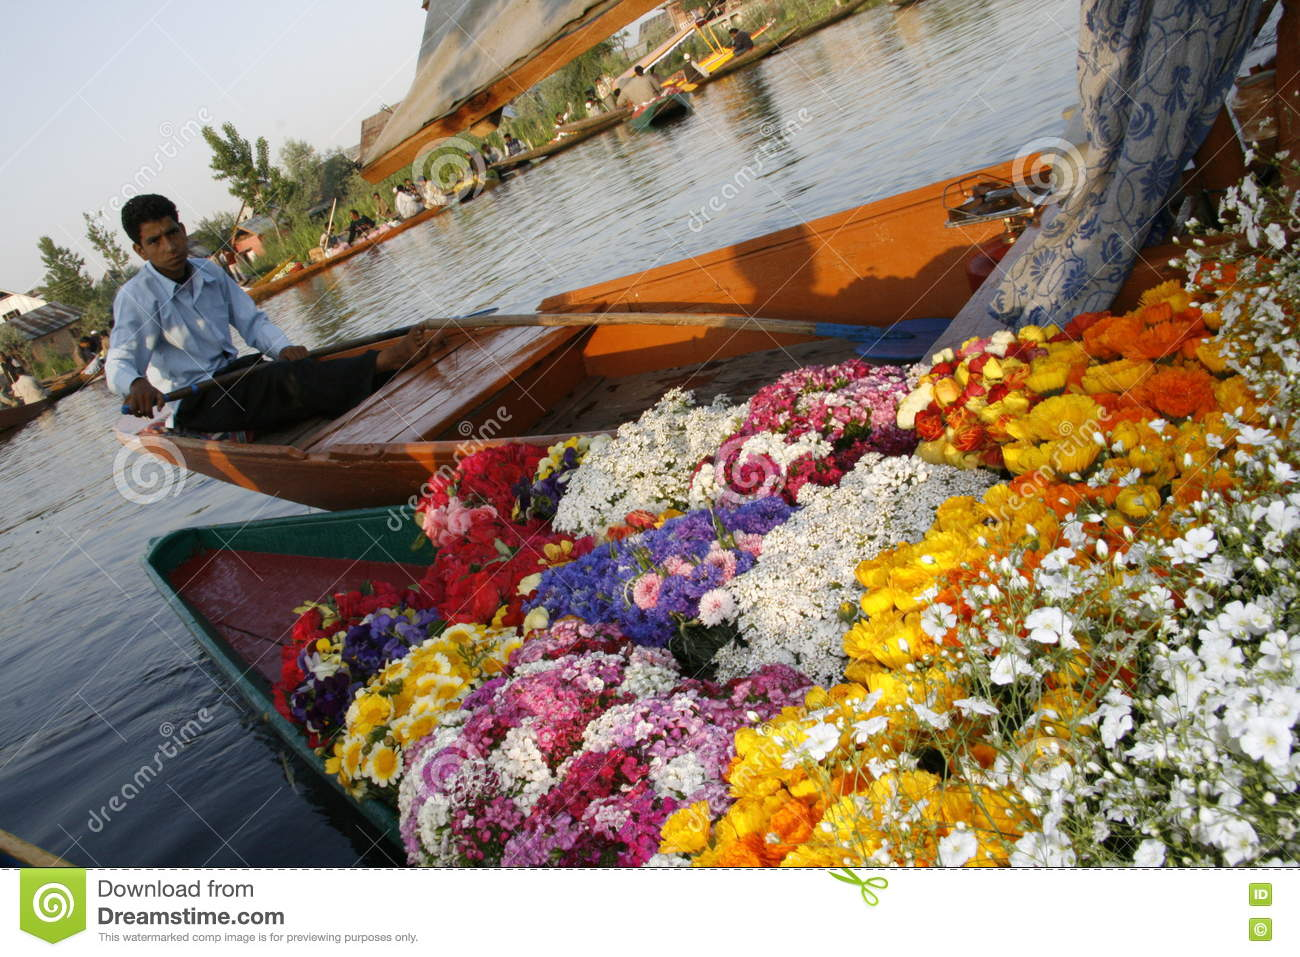 Flowers colorful boat beauty river editorial image image of download flowers colorful boat beauty river editorial image image of flowers izmirmasajfo